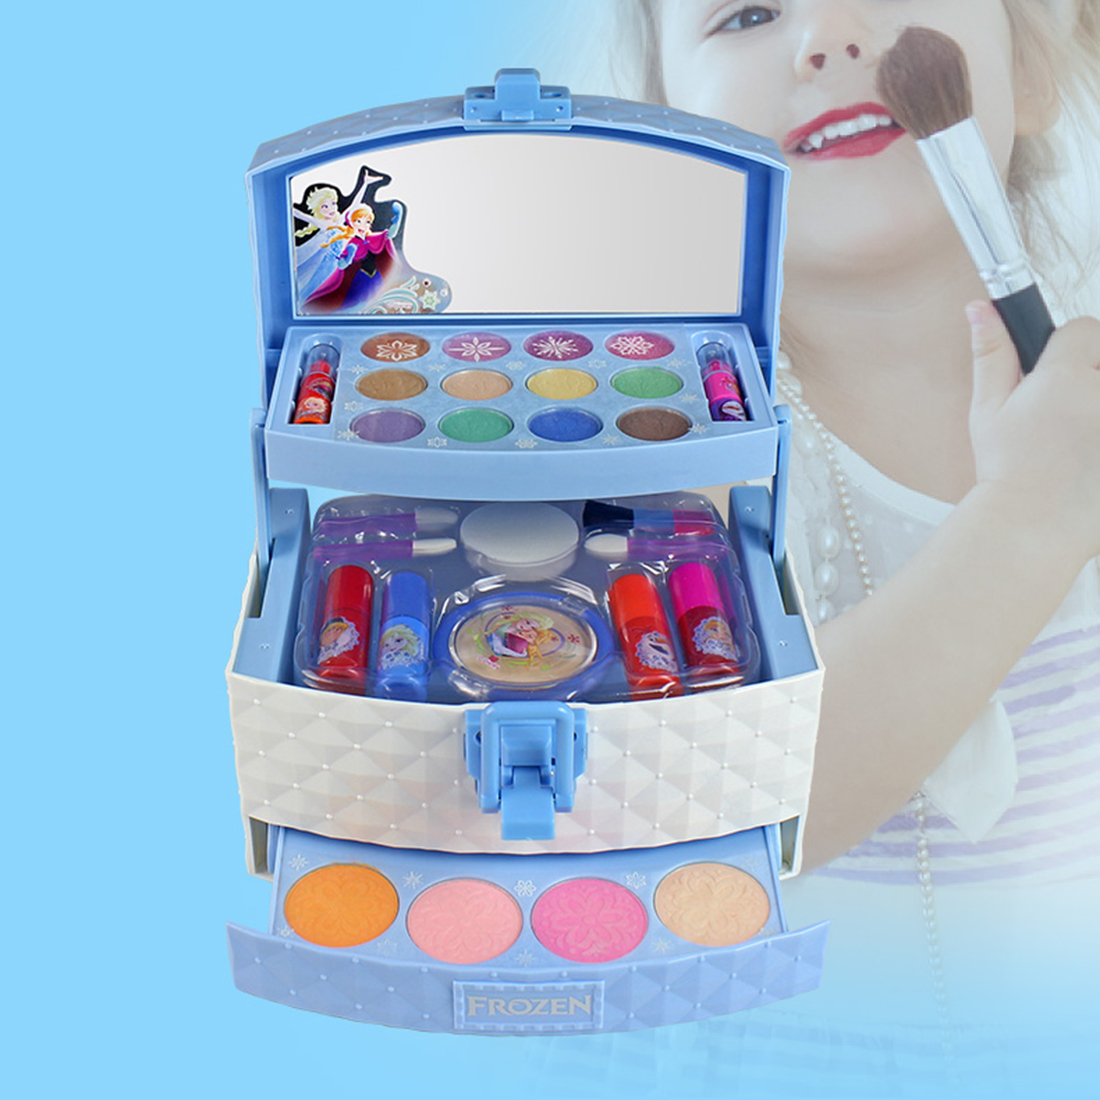 30Pcs Children Pretend Play Cosmetics Case Toy Girl Beauty Series Playset Makeup Toys For Girl Play Set Gift 201930Pcs Children Pretend Play Cosmetics Case Toy Girl Beauty Series Playset Makeup Toys For Girl Play Set Gift 2019